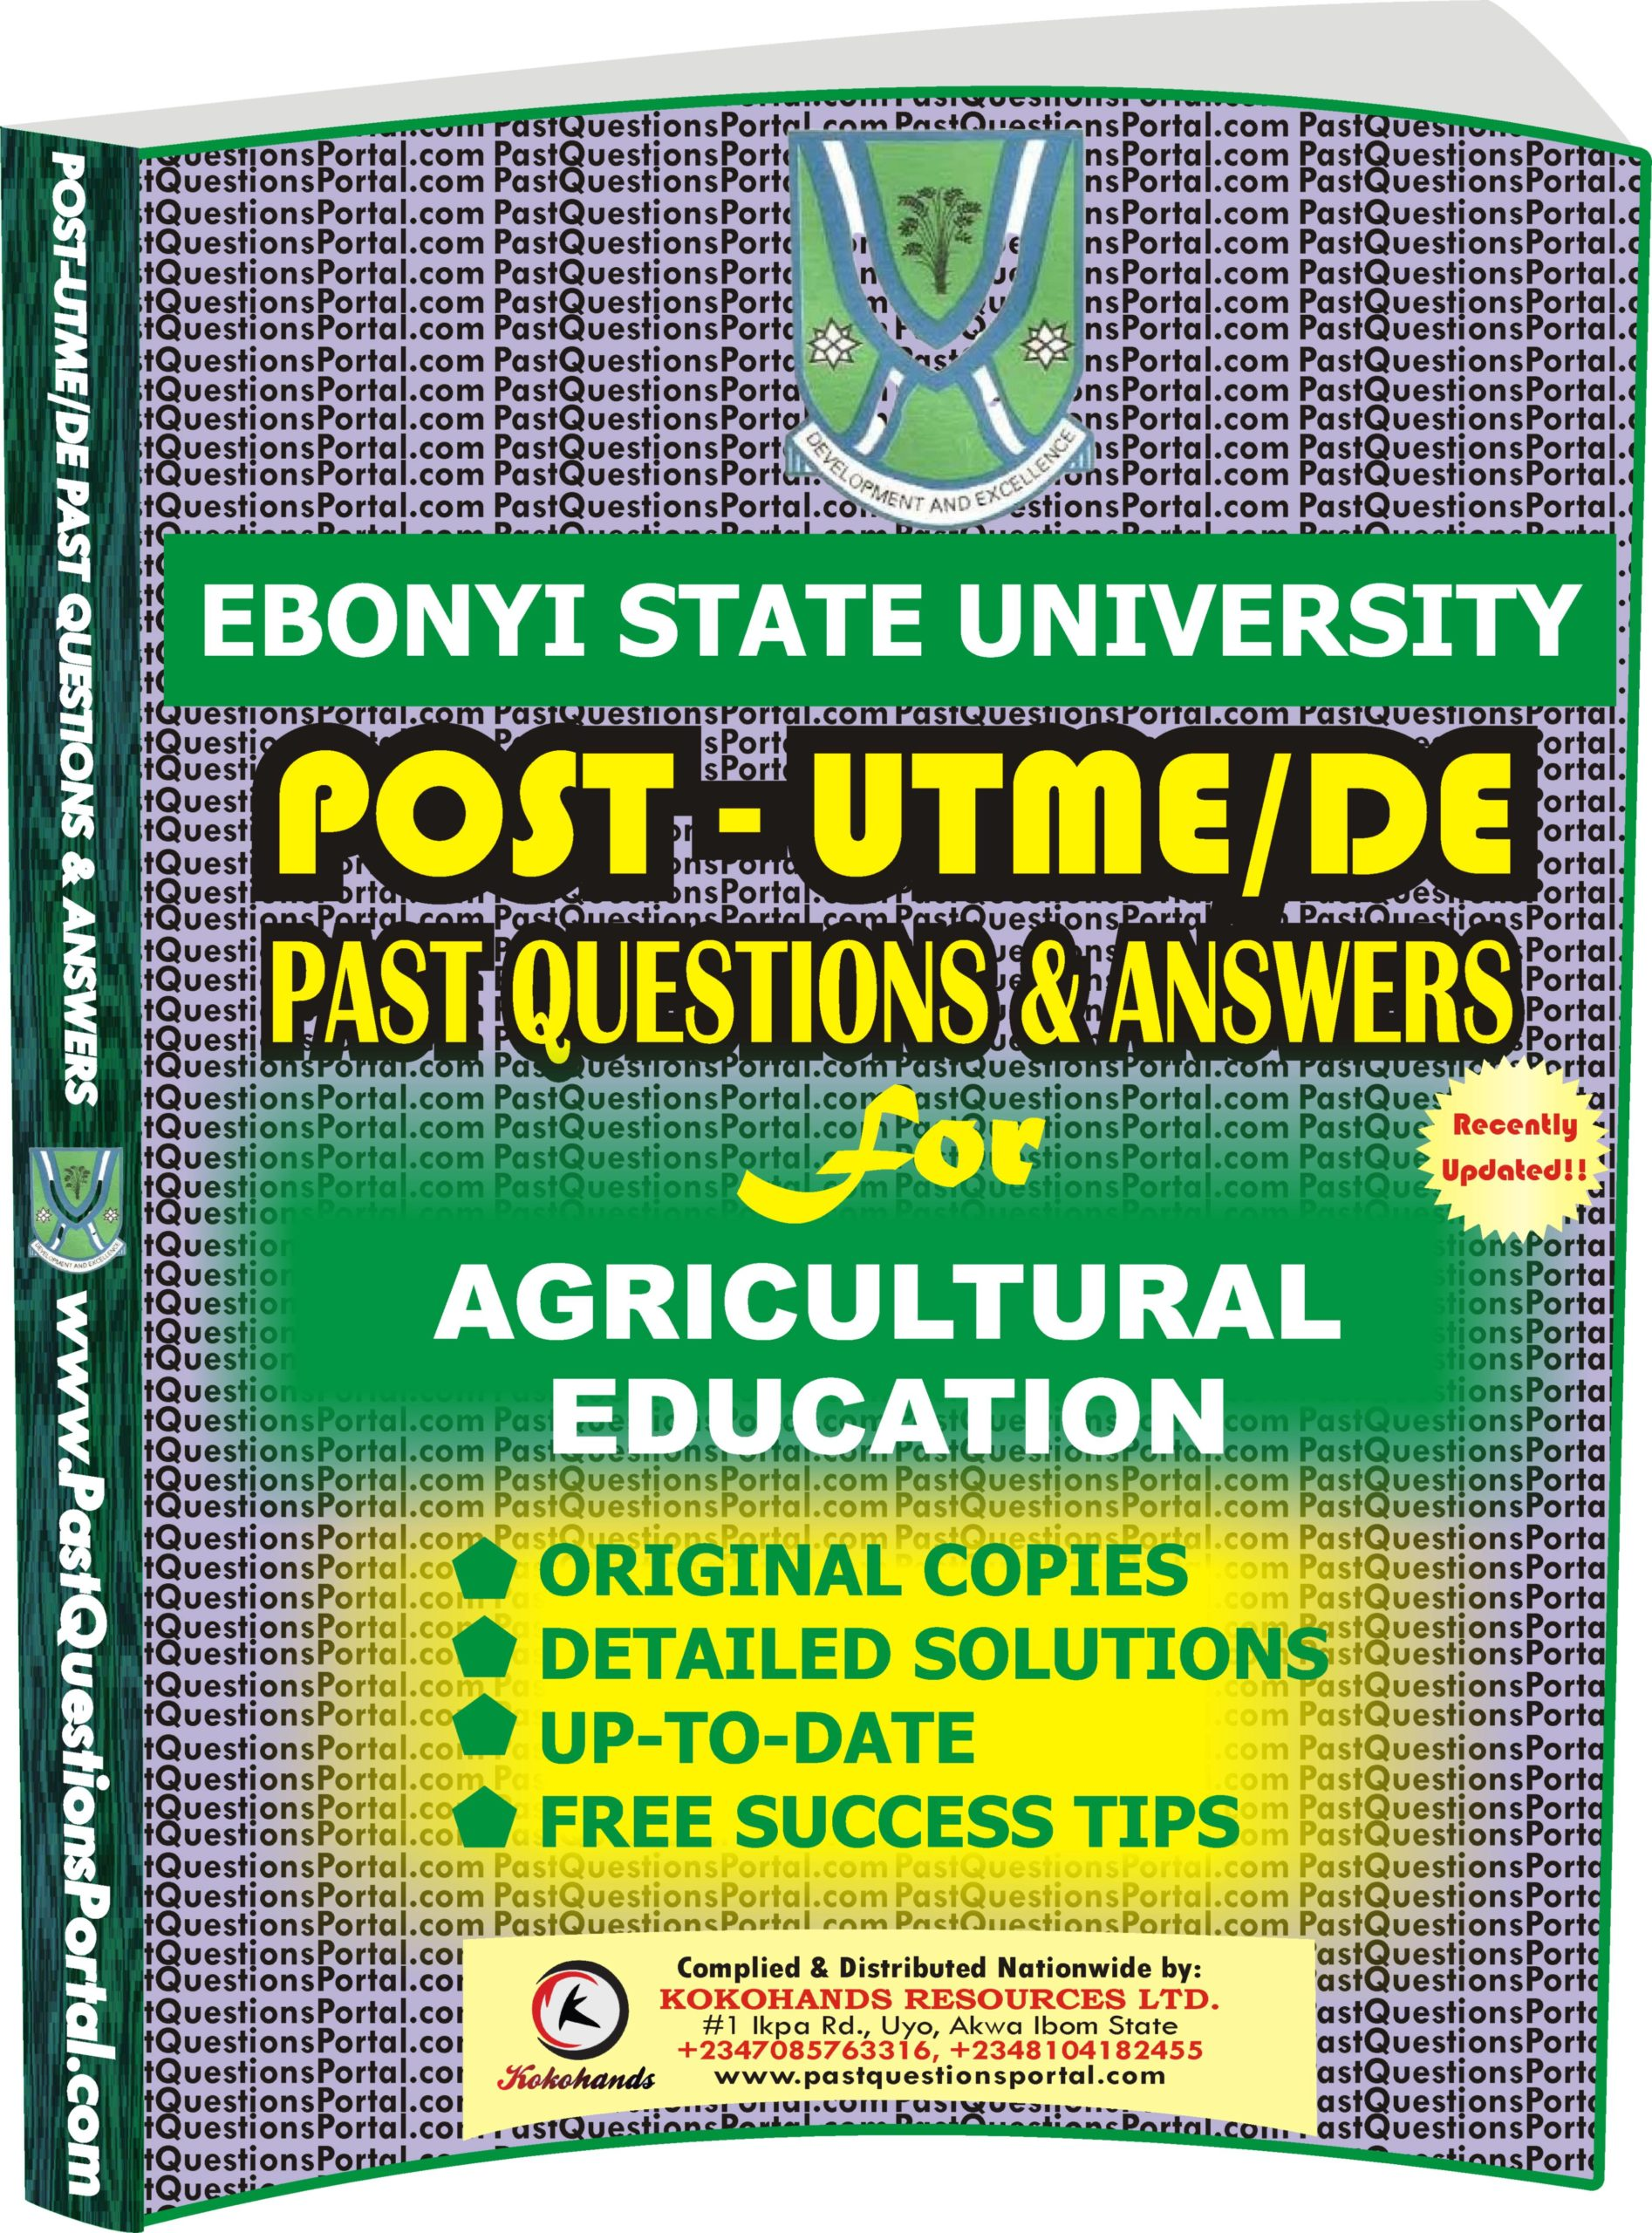 EBSU Post UTME Past Questions for AGRICULTURAL EDUCATION